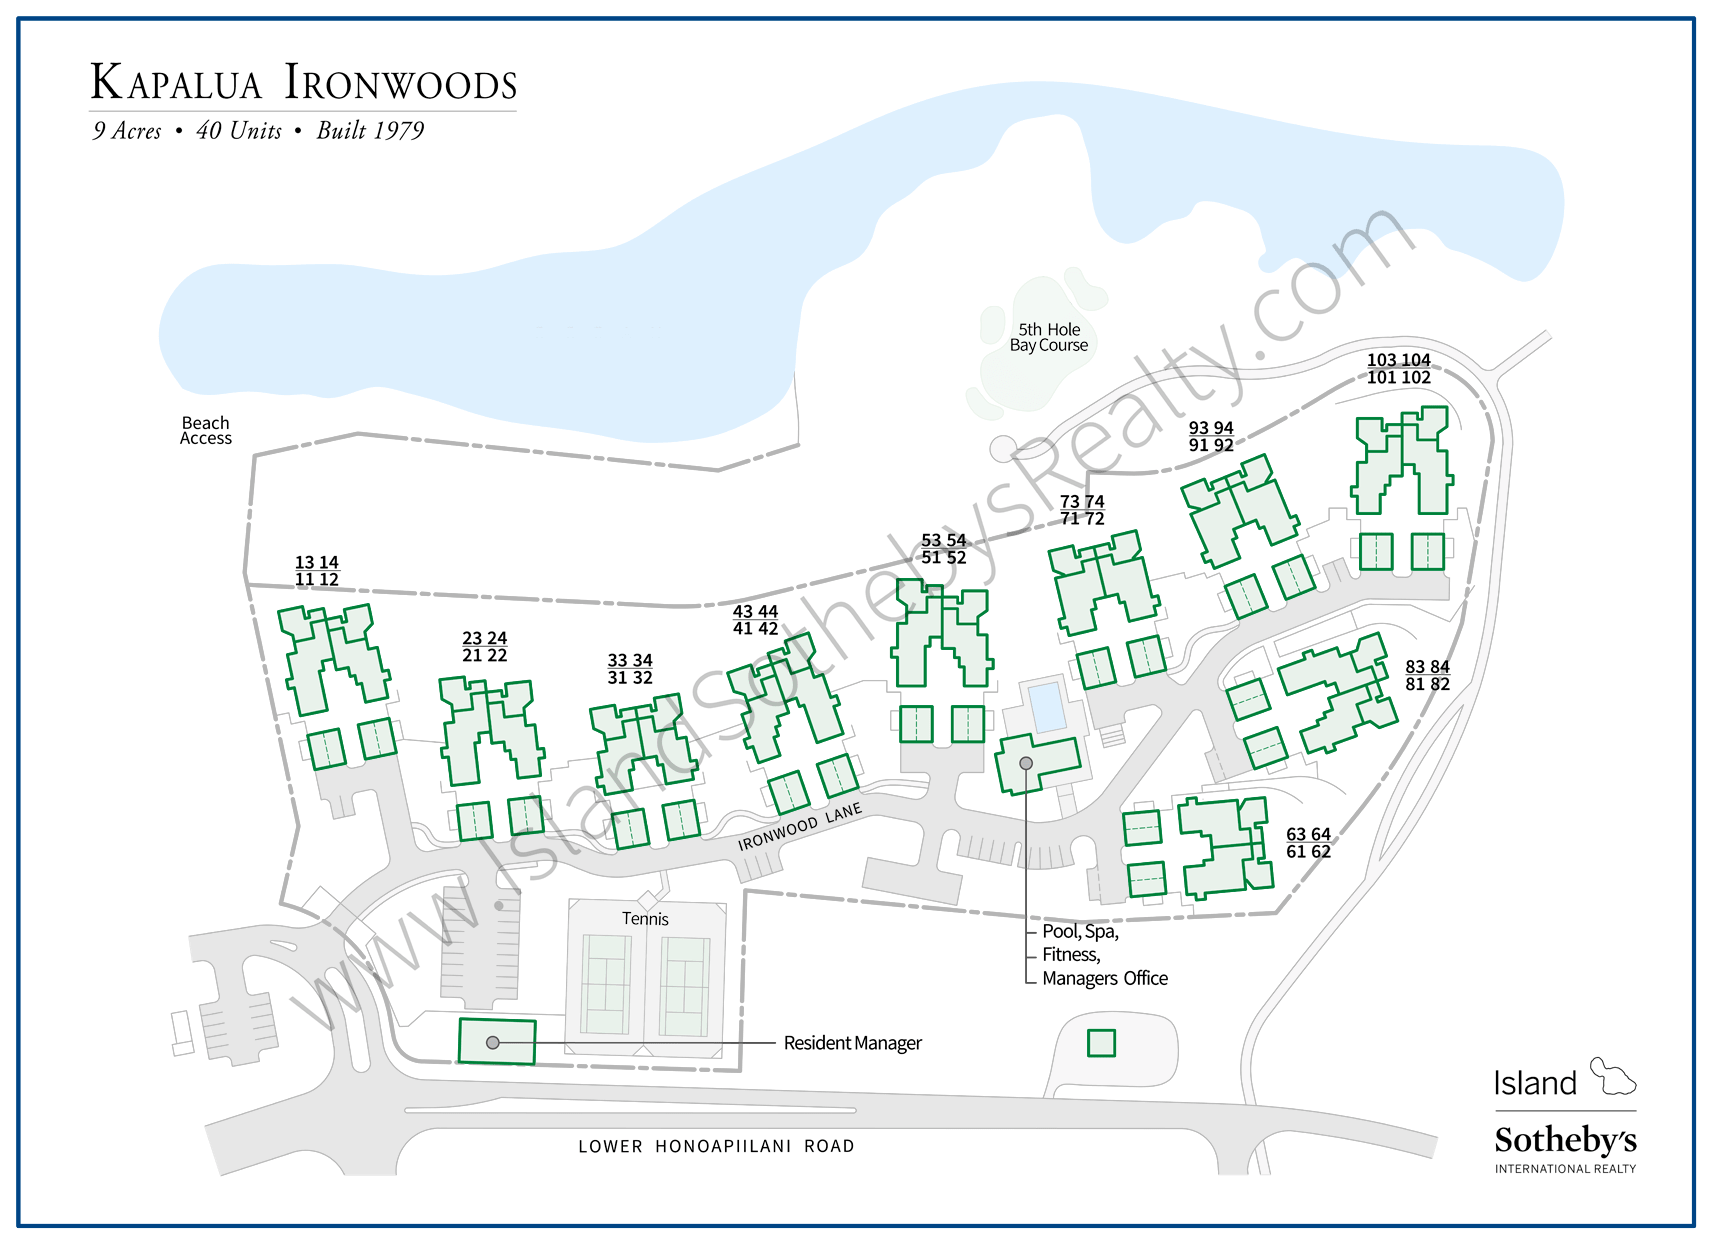 Map of Kapalua Ironwoods Maui